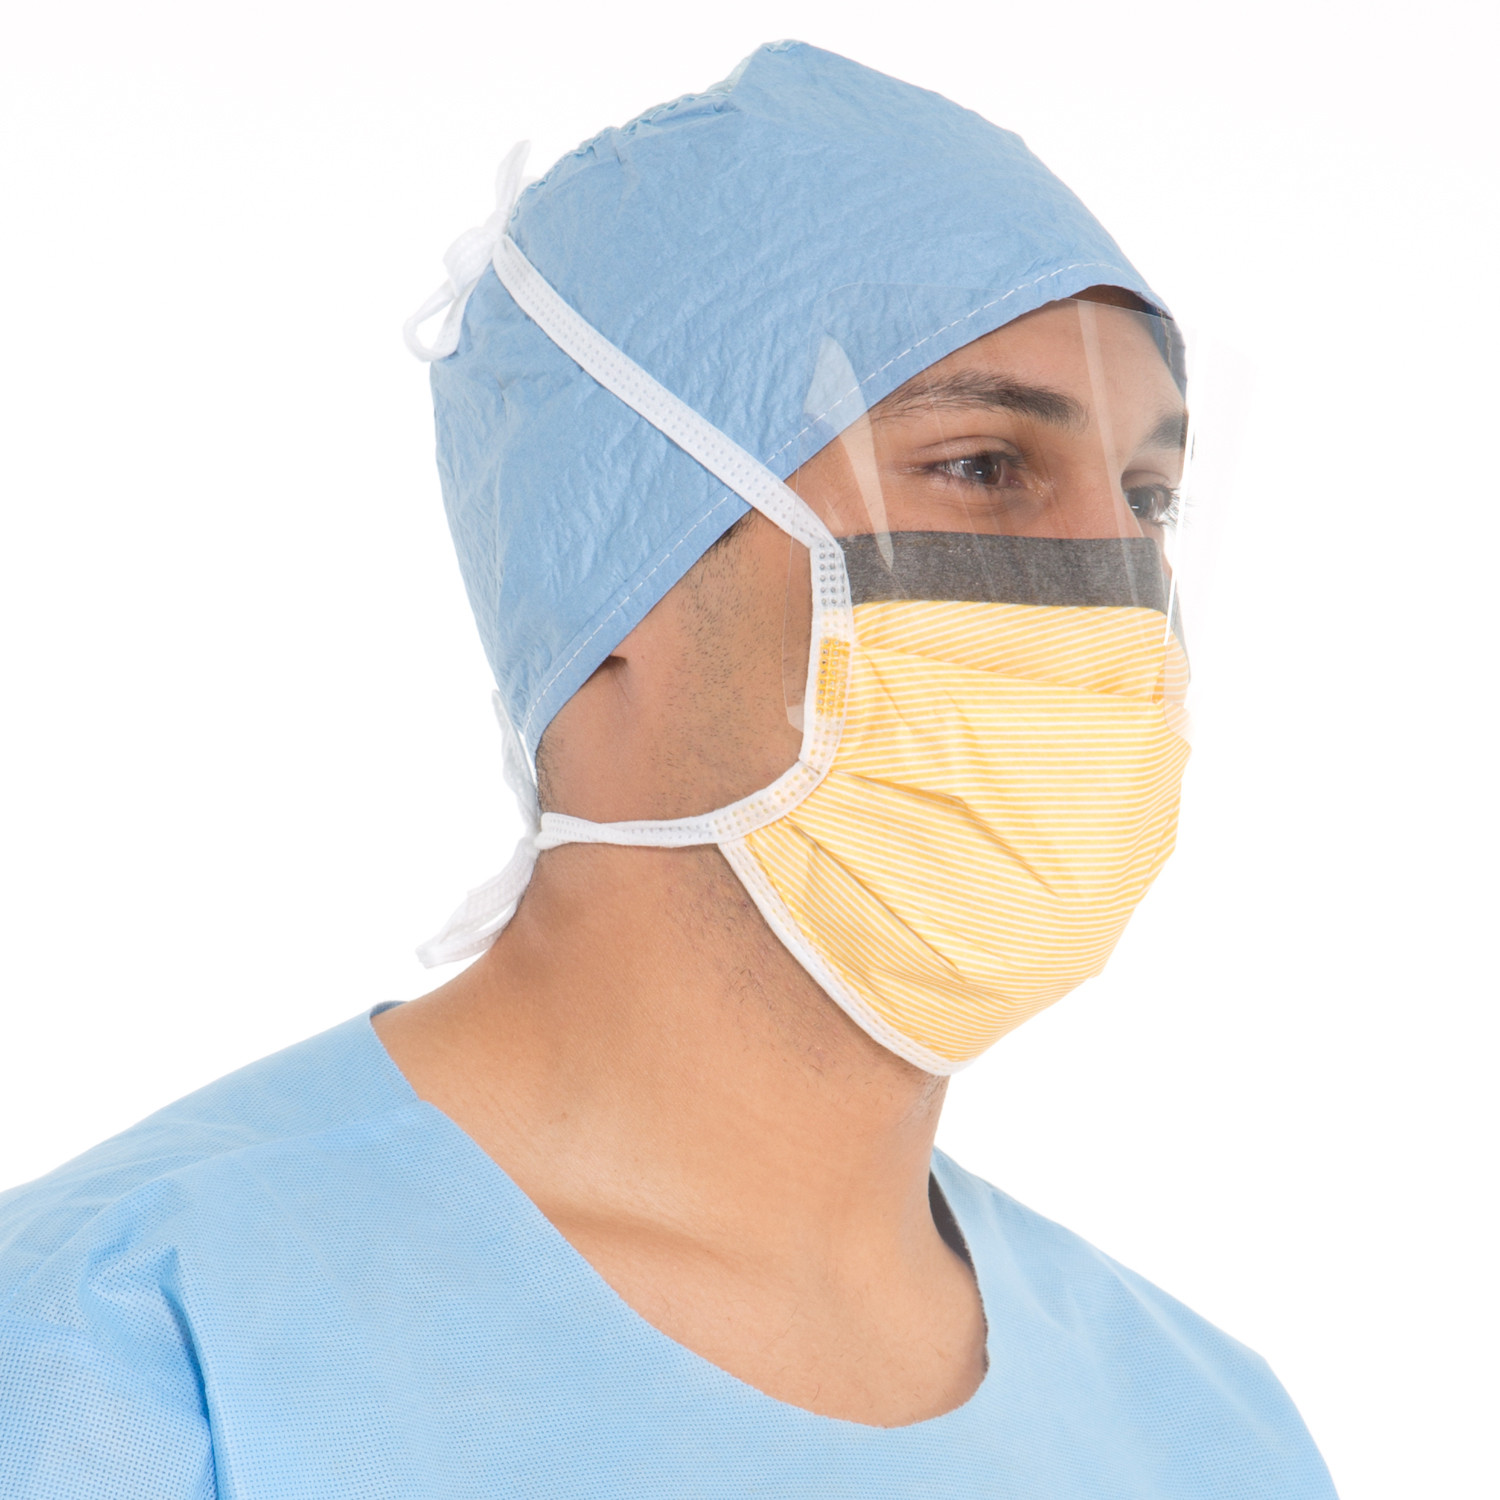 surgical mask - photo #22